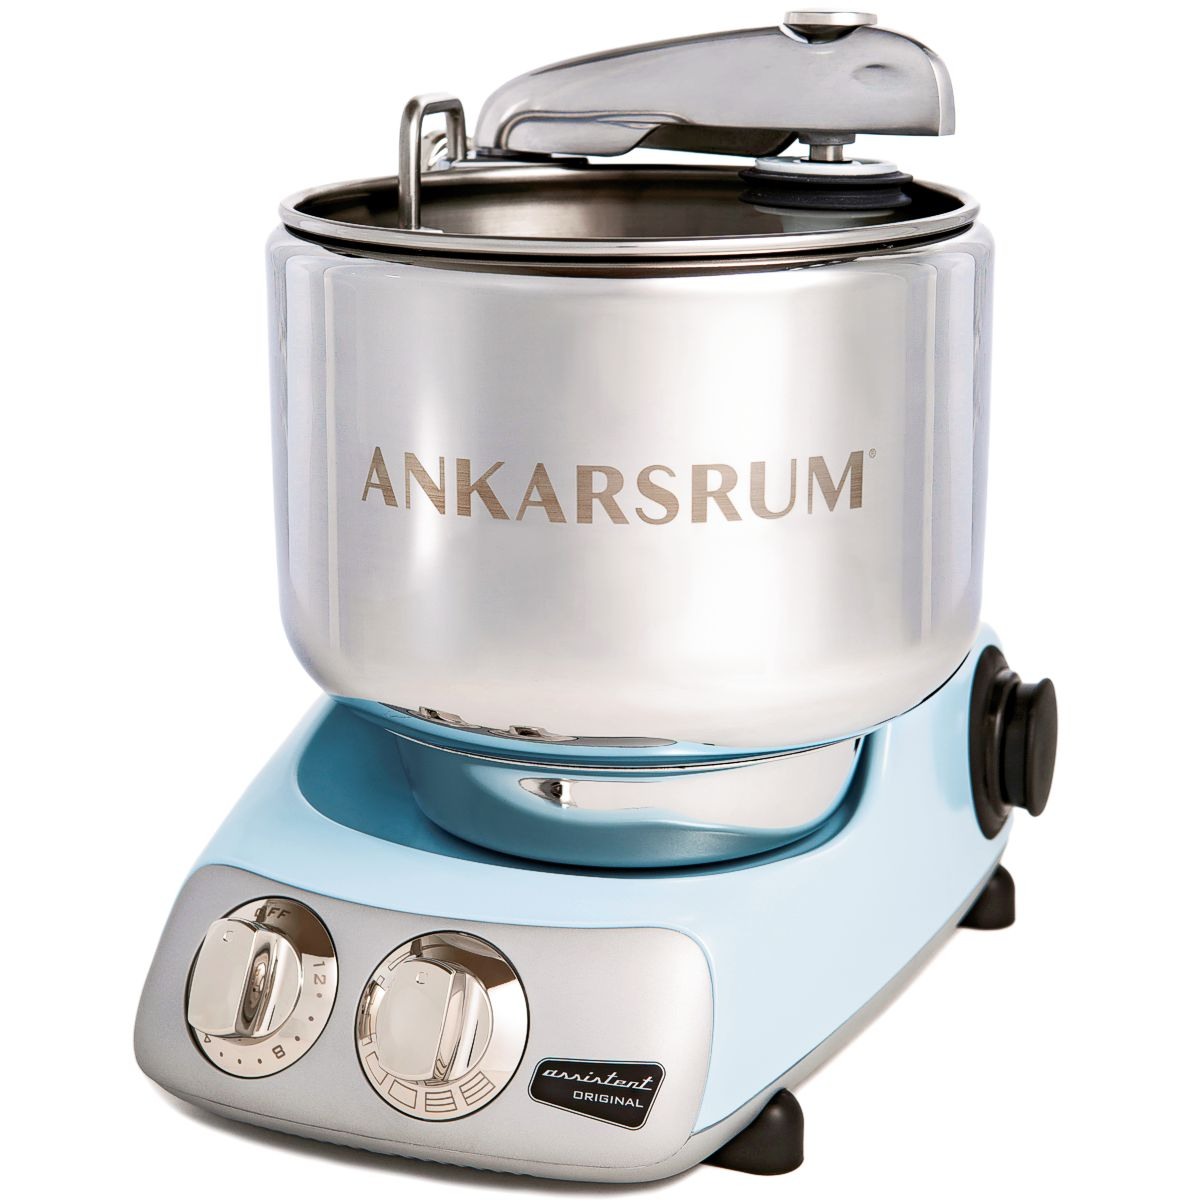 Save $100 now on early-2017 model Ankarsrum mixers! Click to see which colors are still available!